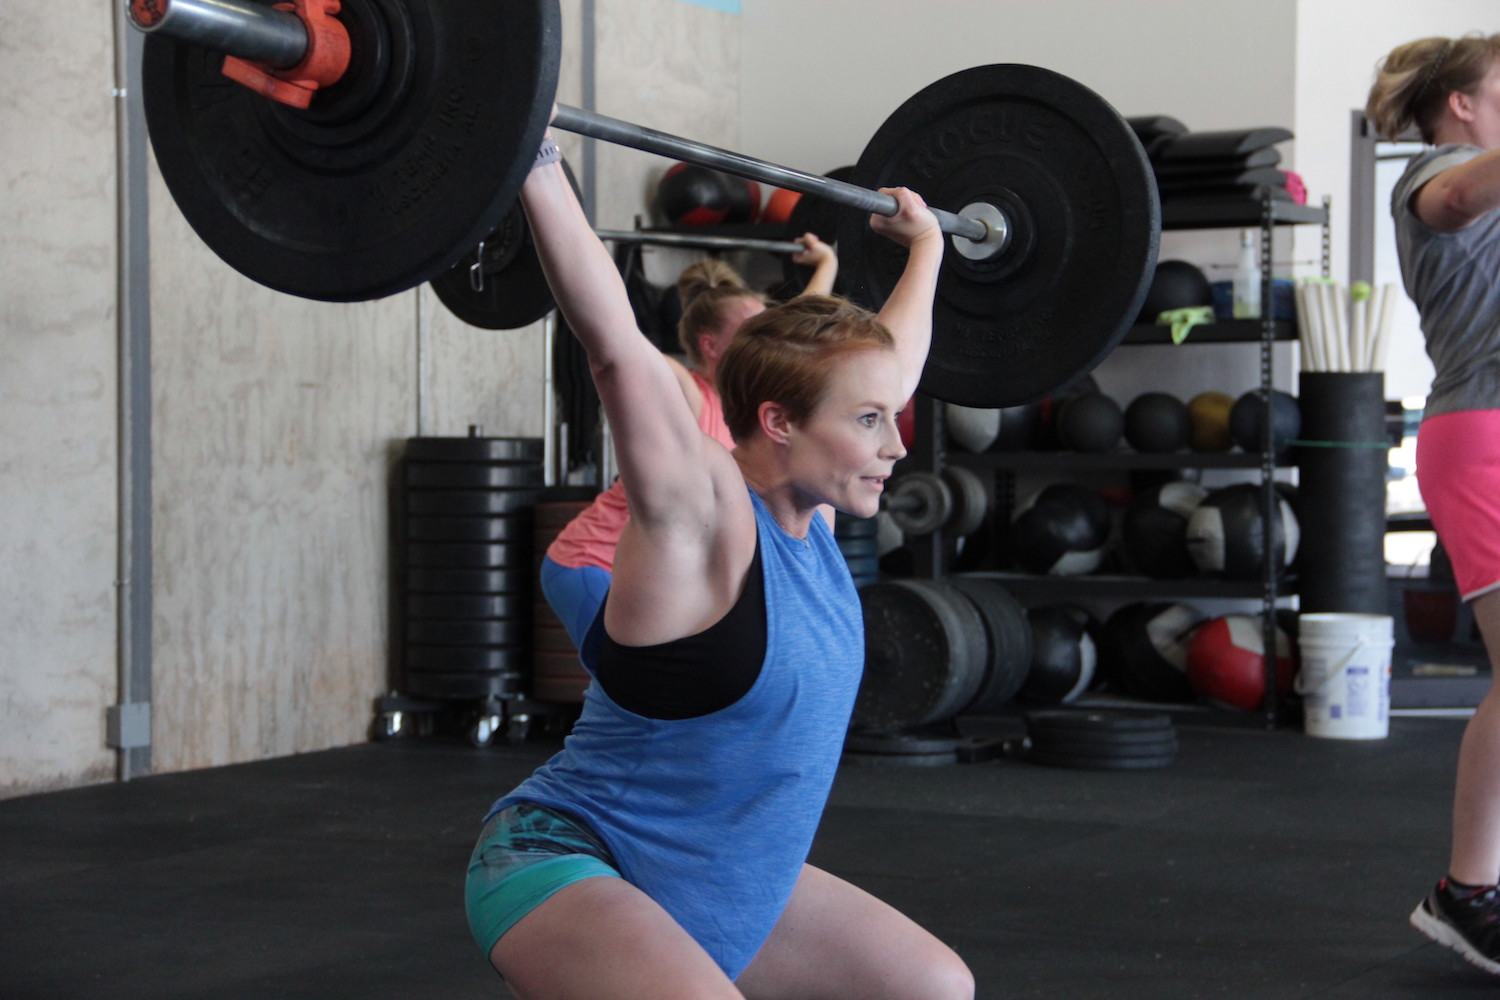 A woman performing an olympic weightlifting movement.